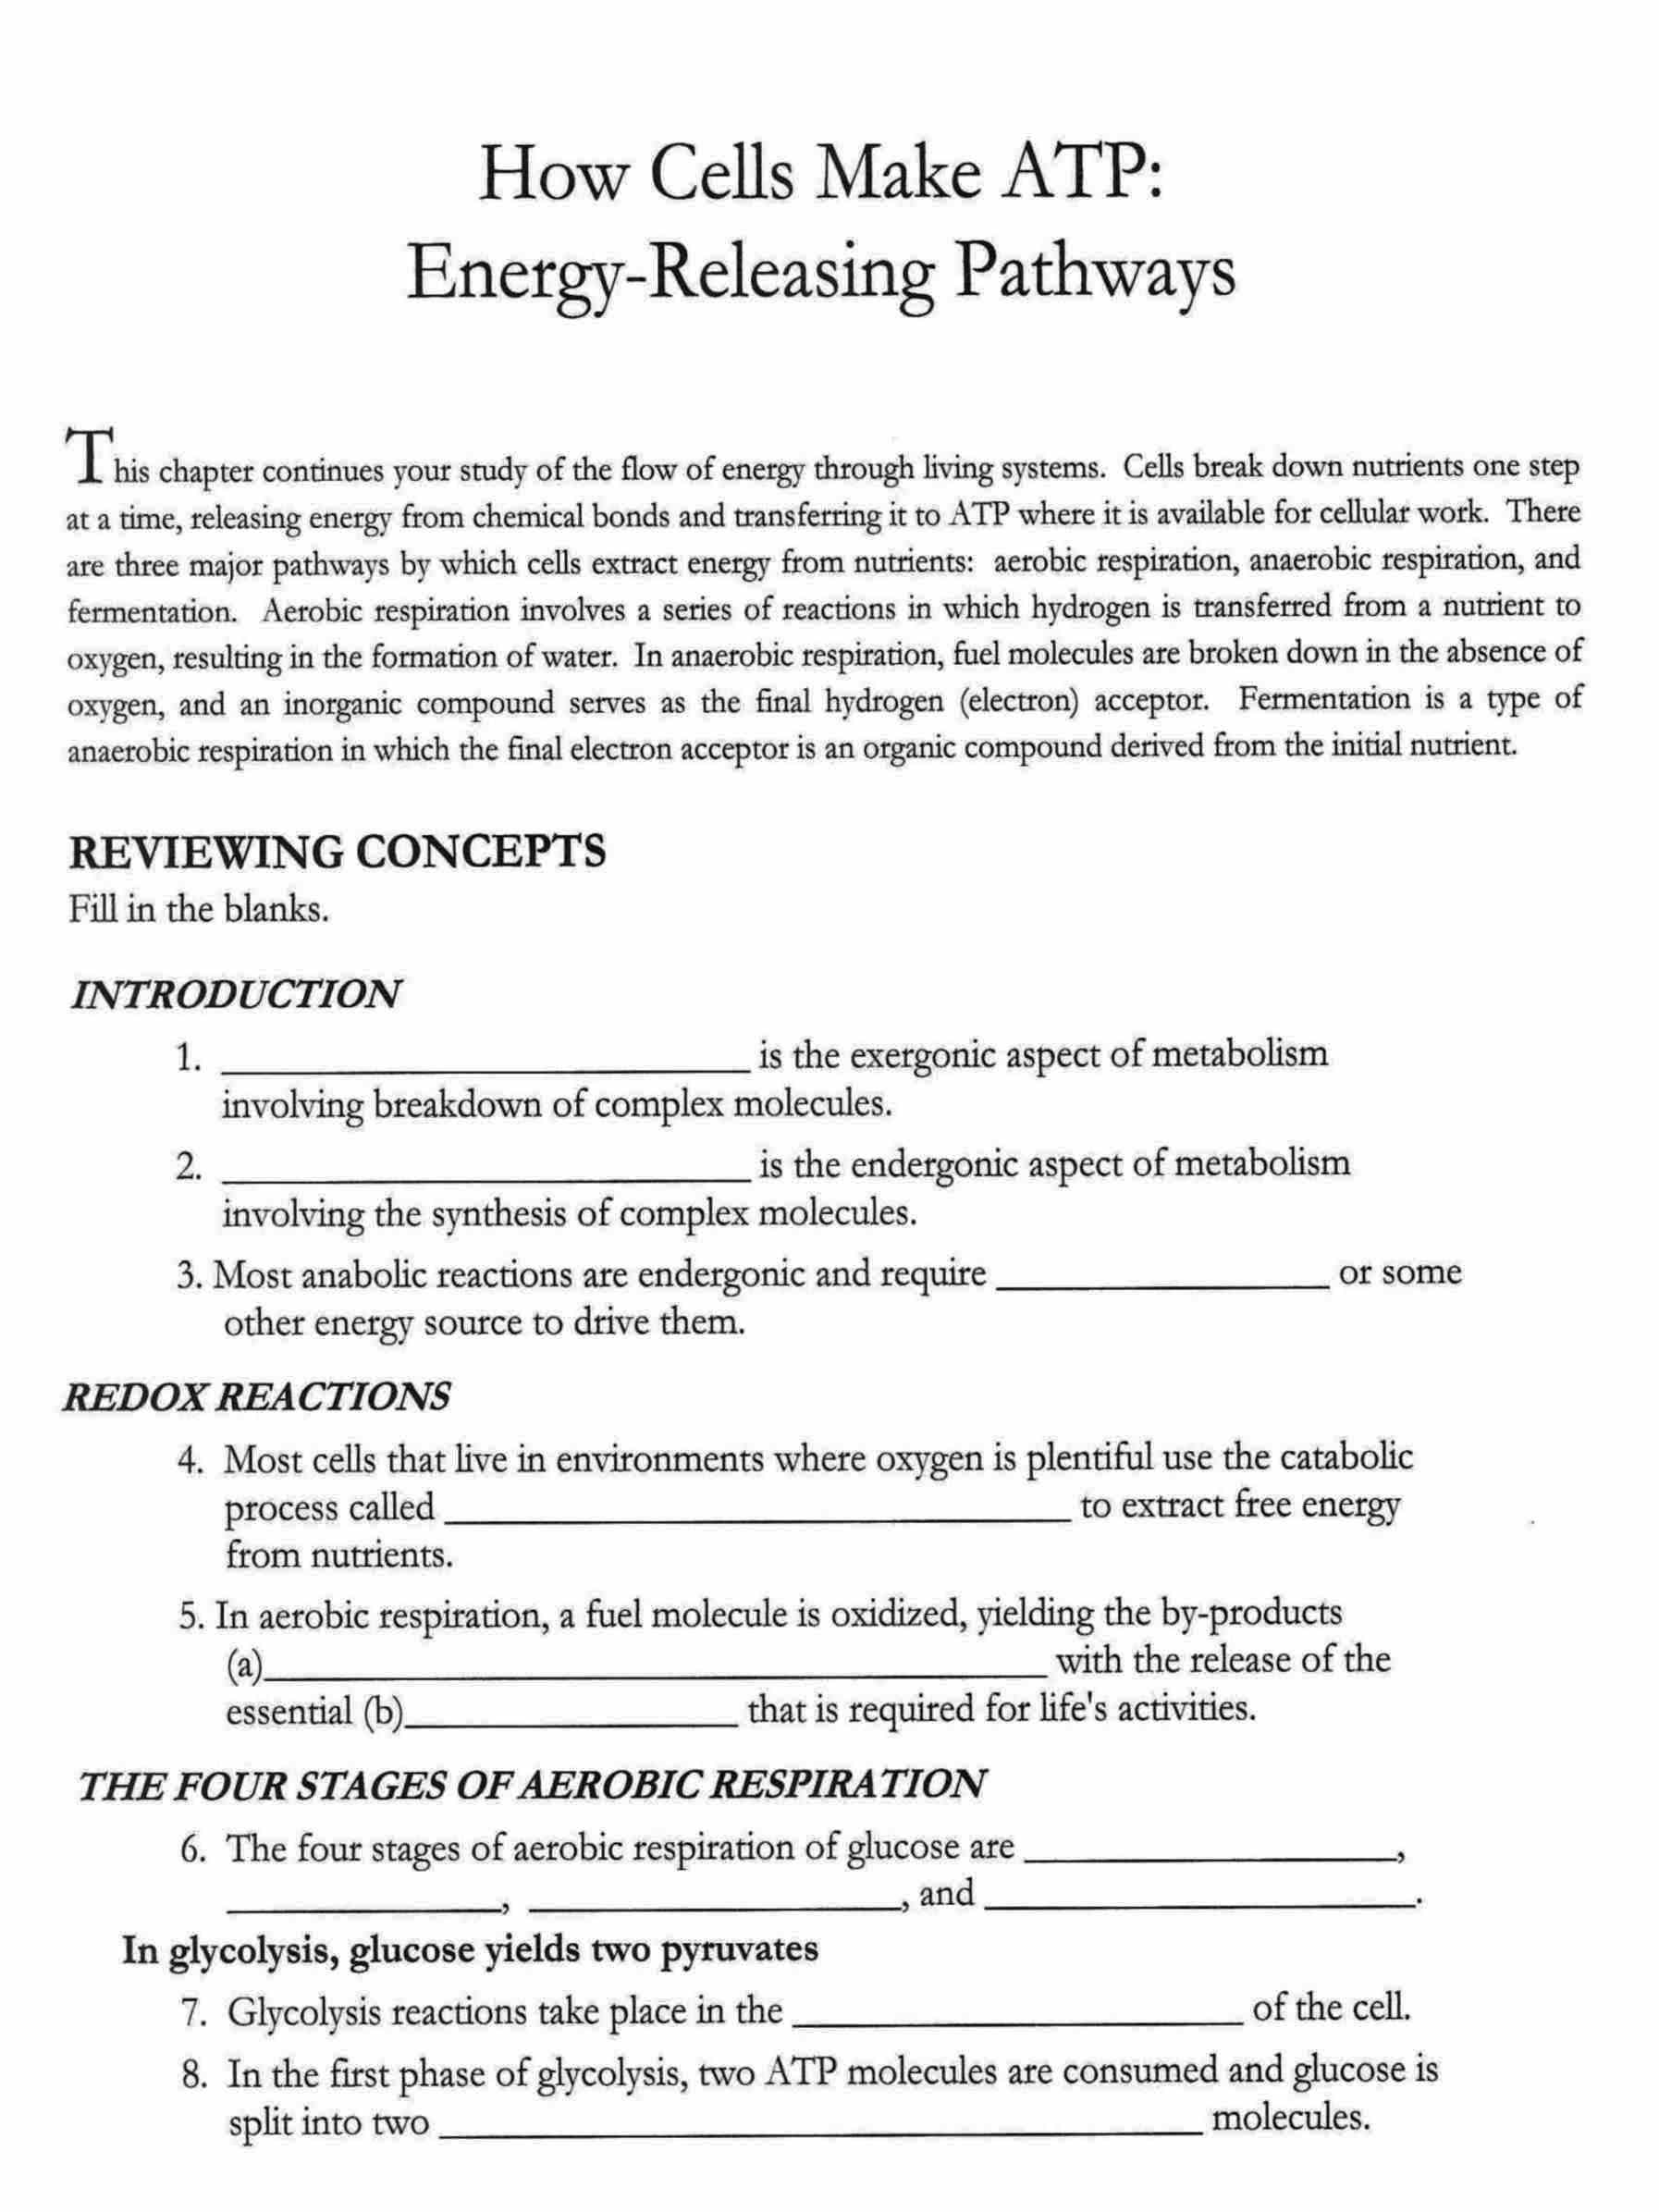 Printables Cellular Respiration Worksheet cellular respiration worksheet college intrepidpath worksheets tes the best and most prehensive 3 jpg